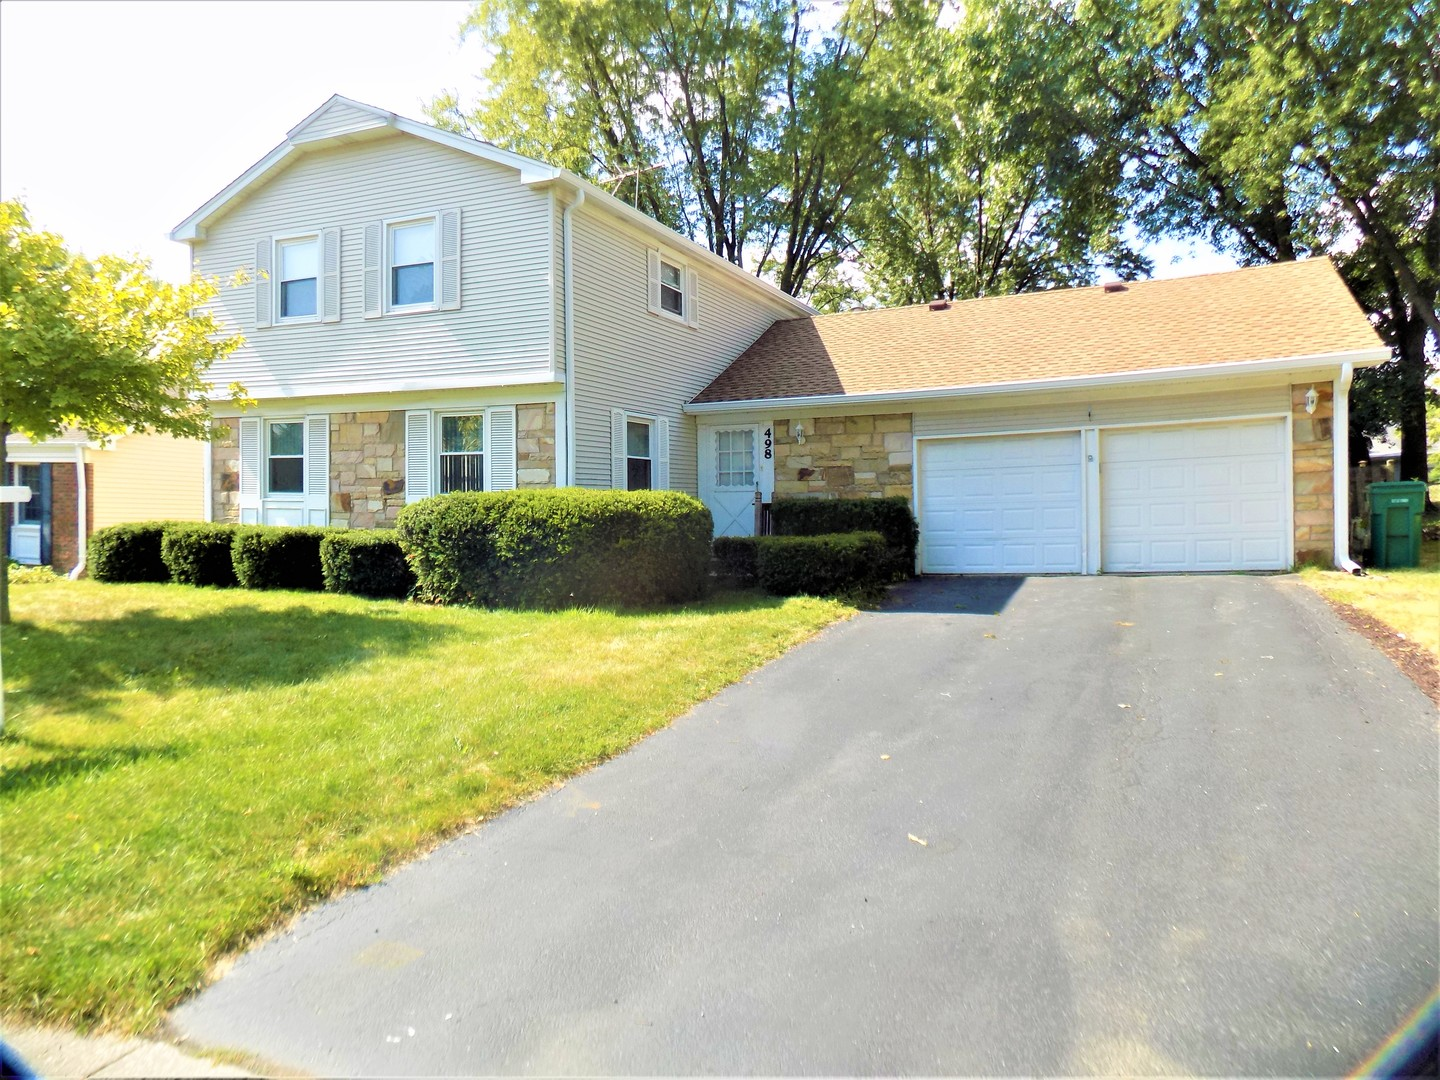 498 Longwood Drive, Buffalo Grove, Illinois 60089